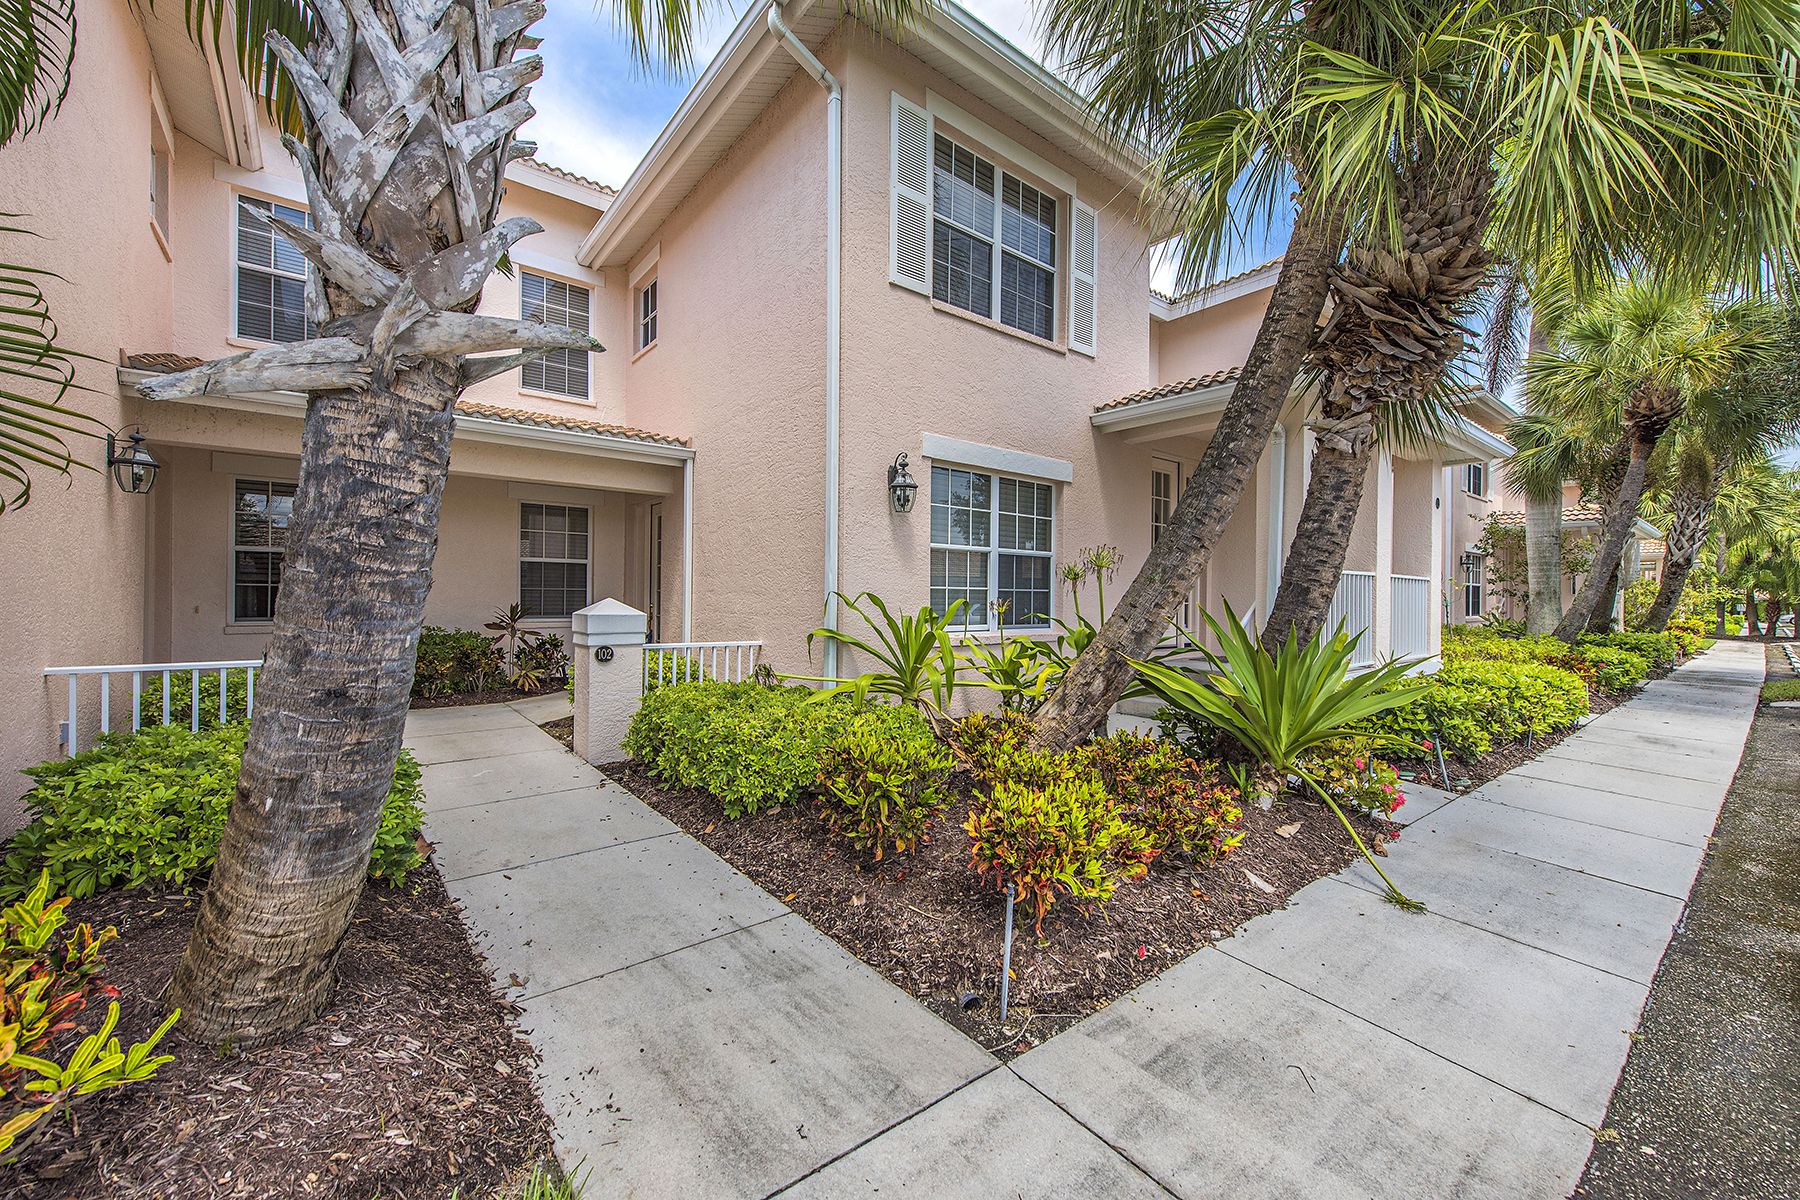 Condominio por un Venta en FIDDLER'S CREEK - WHISPER TRACE 8335 Whisper Trace Way 102 Naples, Florida 34114 Estados Unidos